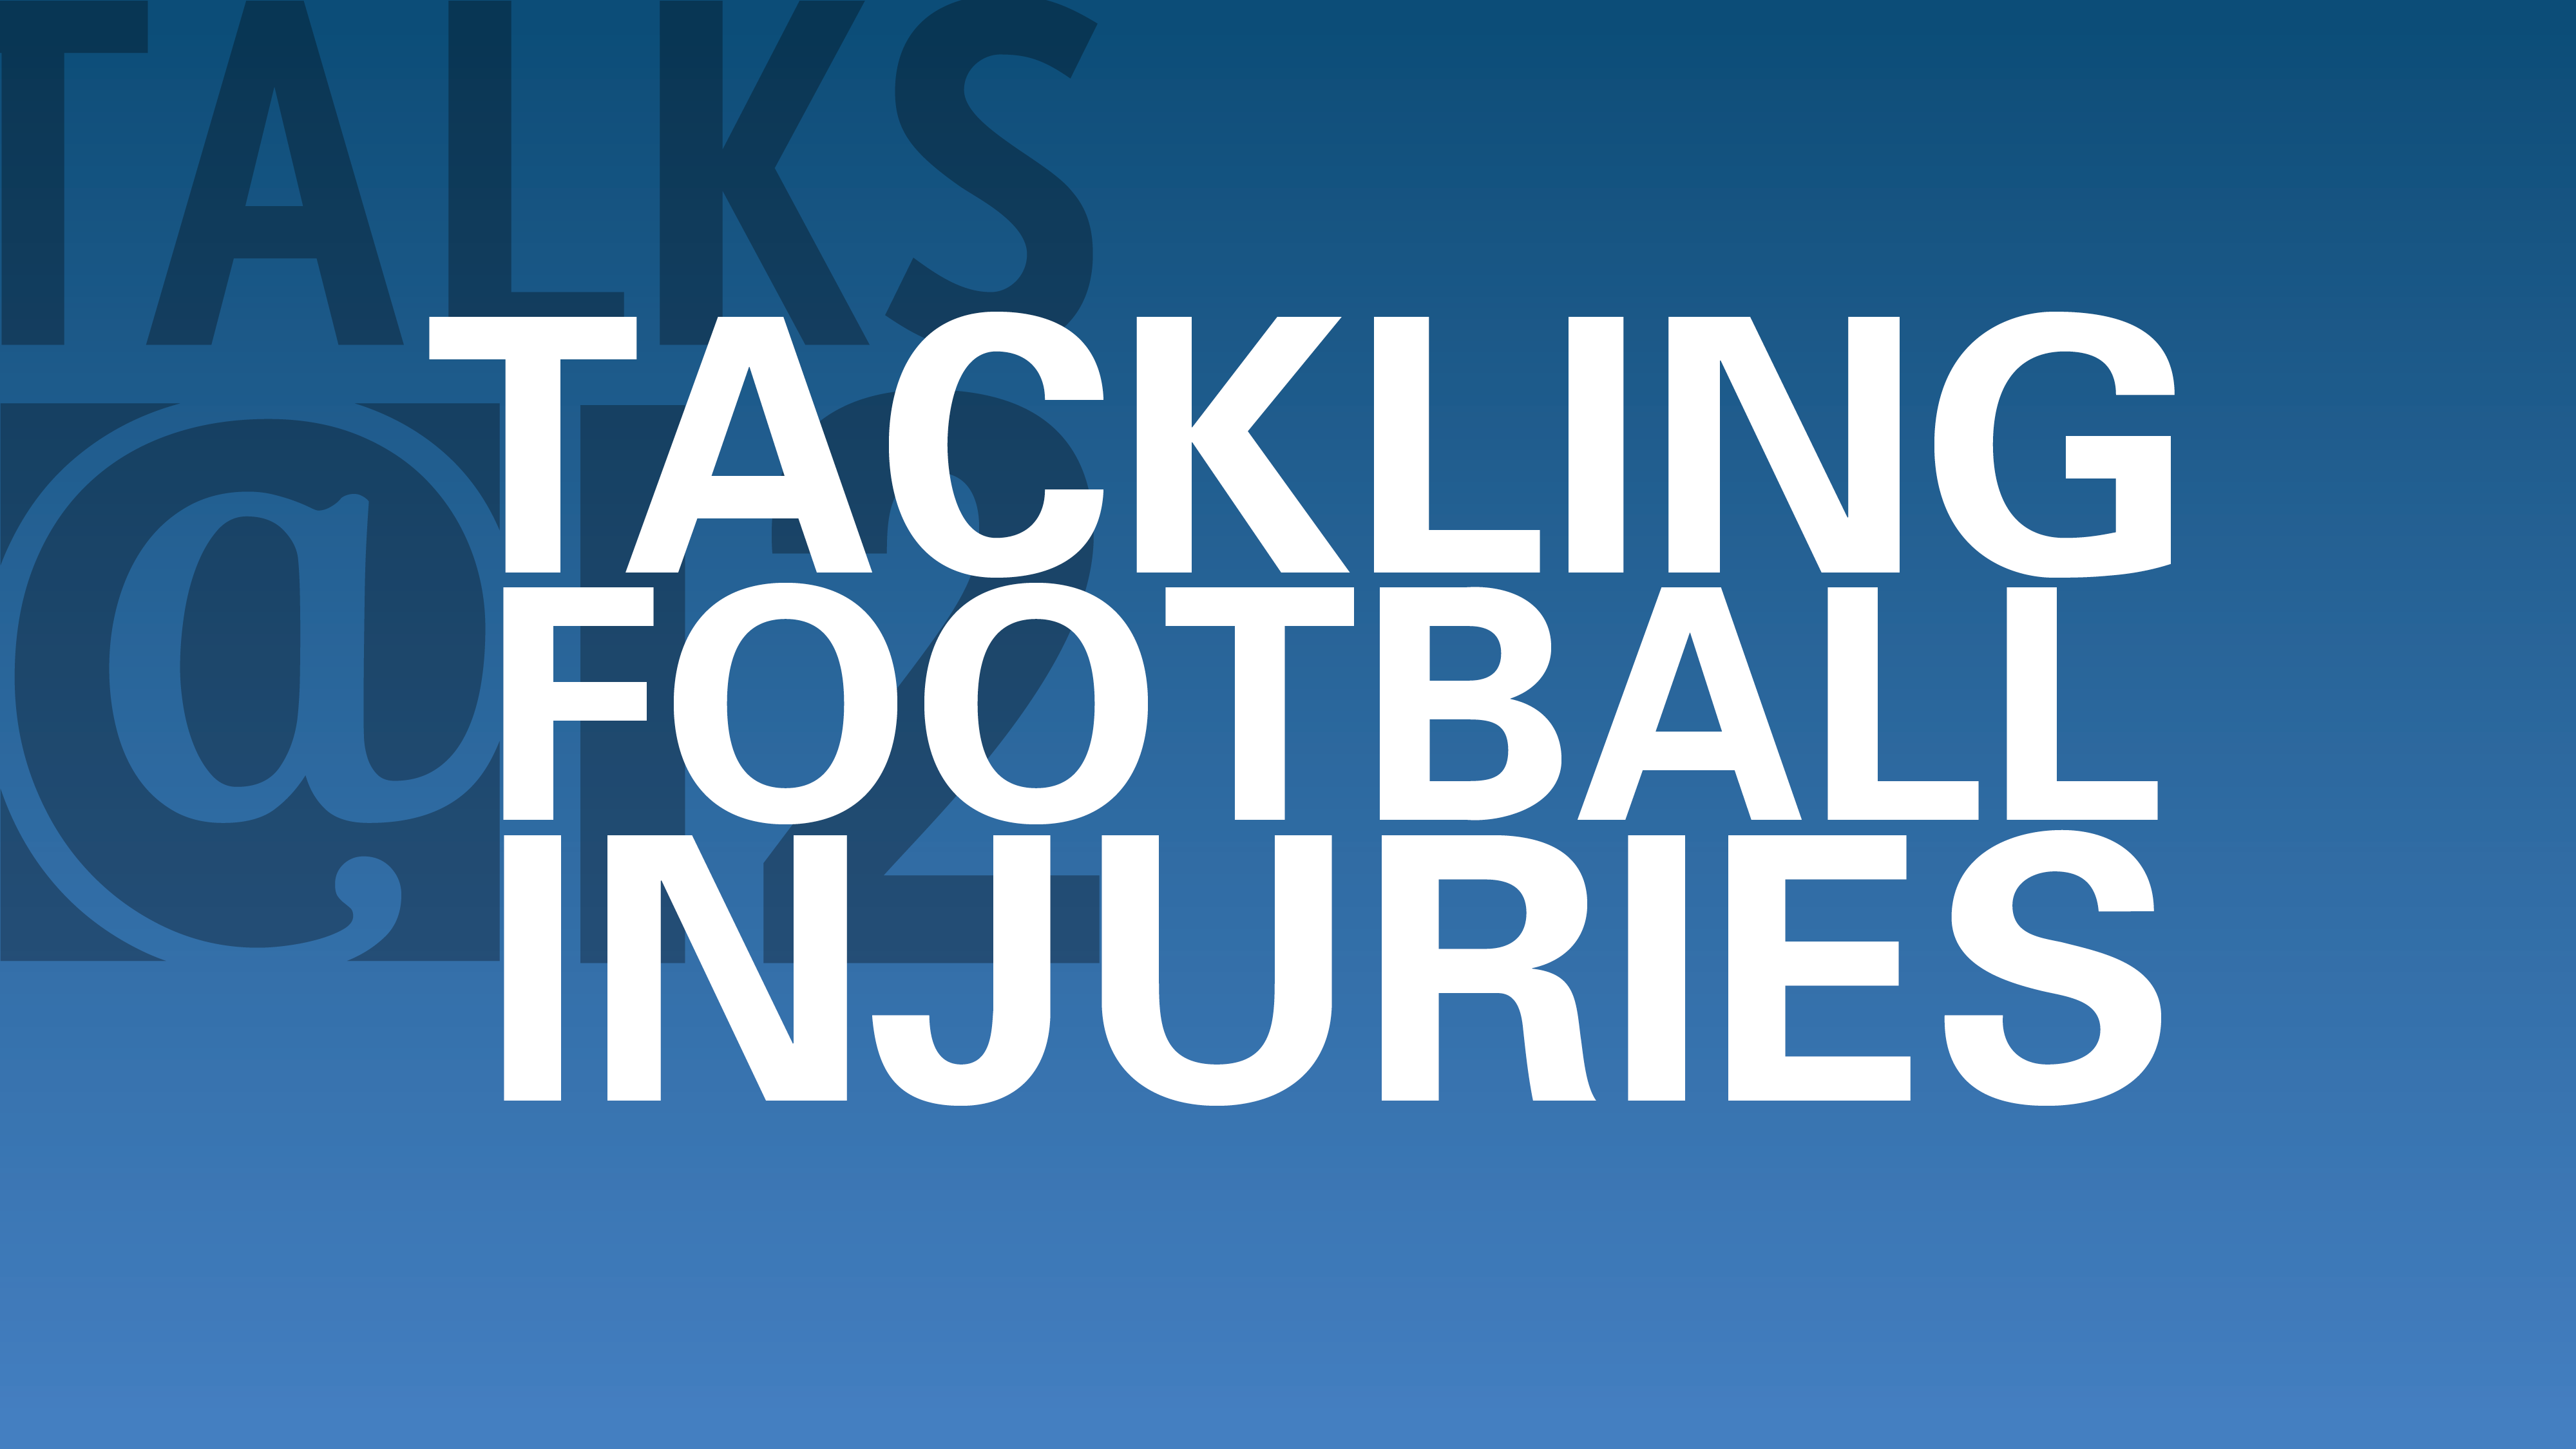 Tackling Football Injuries